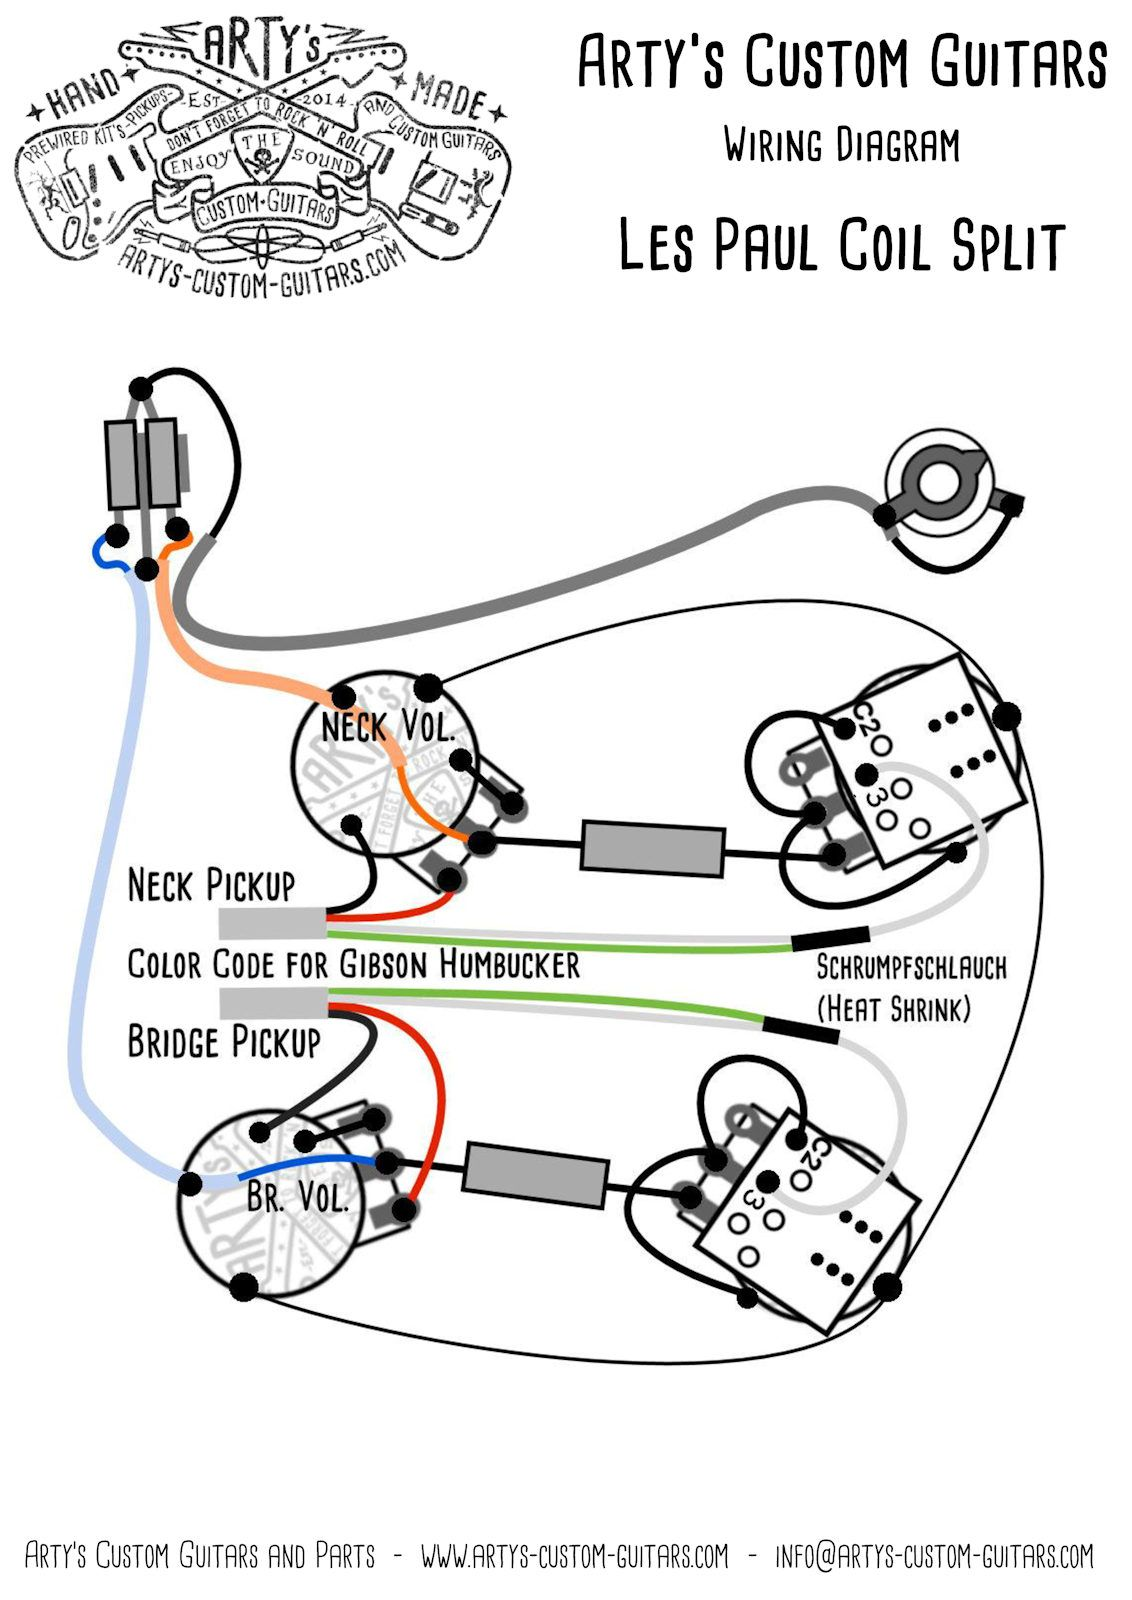 PREWIRED KIT LES PAUL Coil Split | Les paul, Custom guitars, Taylor guitarsPinterest